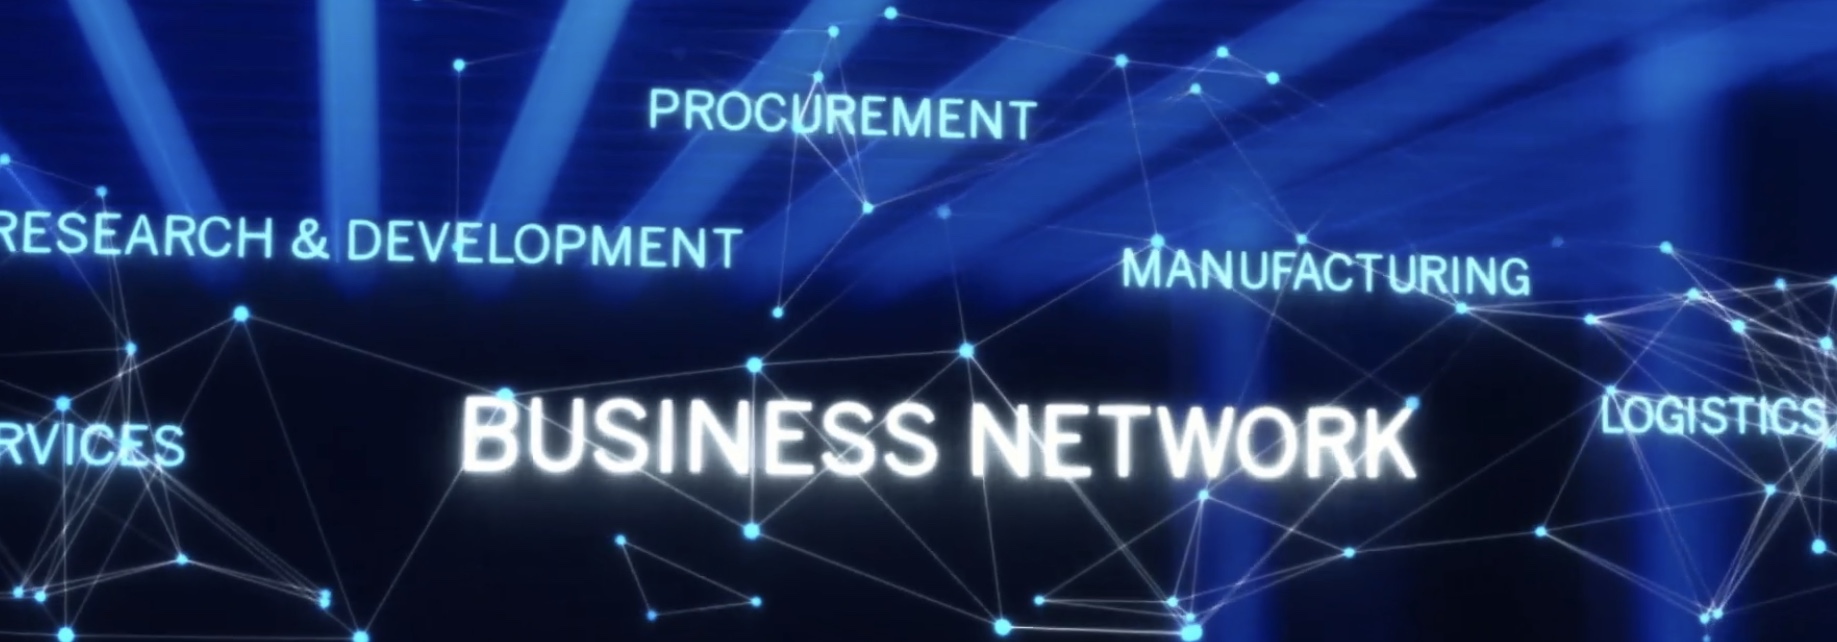 Build%20the%20Network%20of%20Business%20Networks